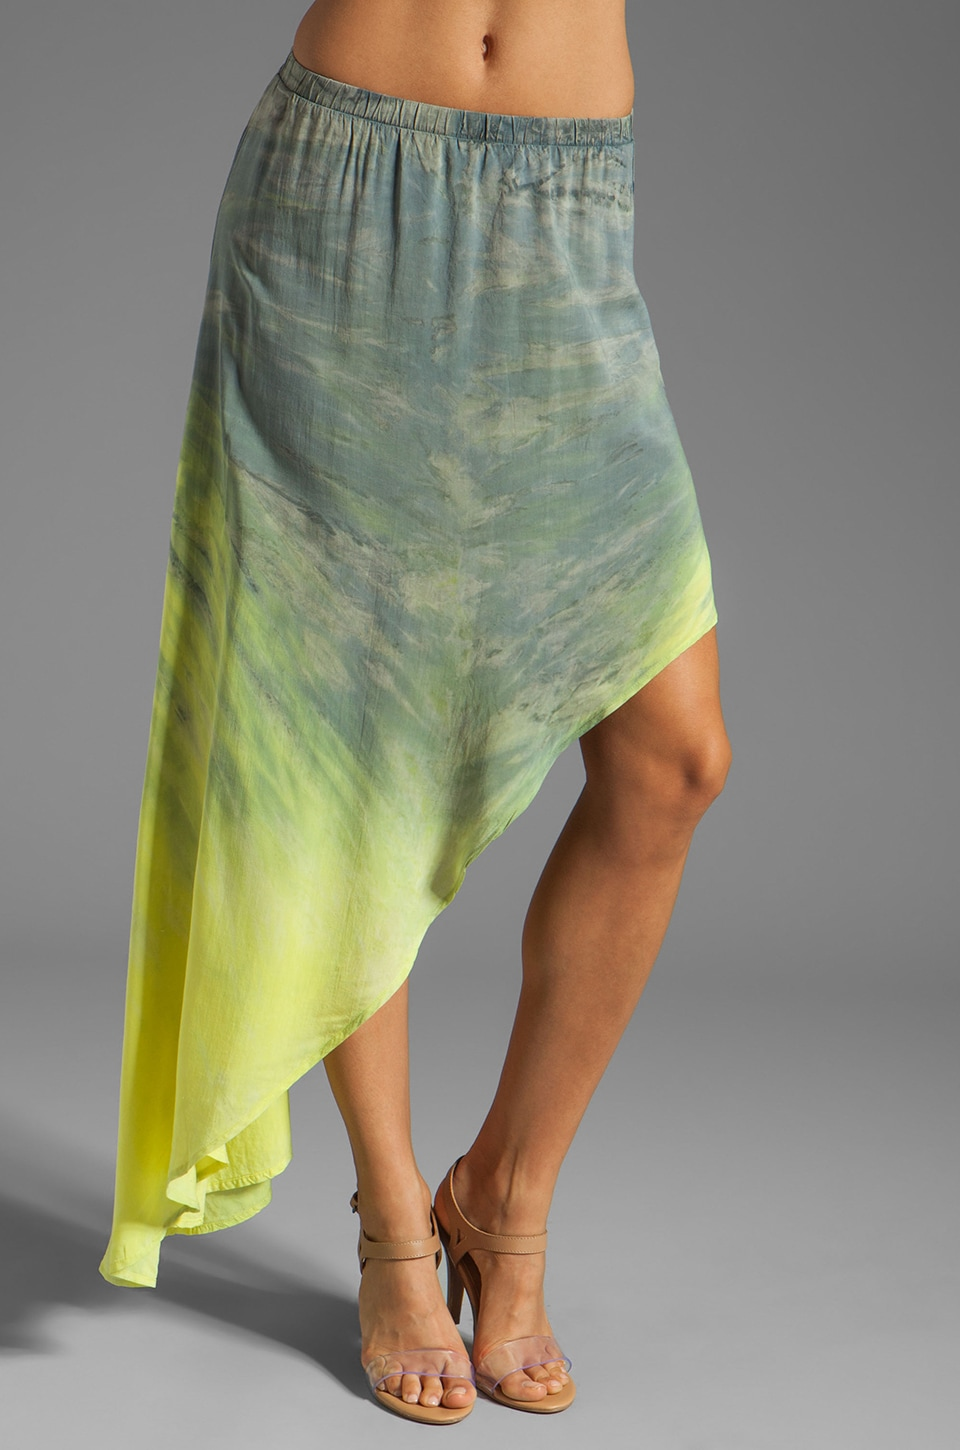 WOODLEIGH Kazia Skirt in Lemon